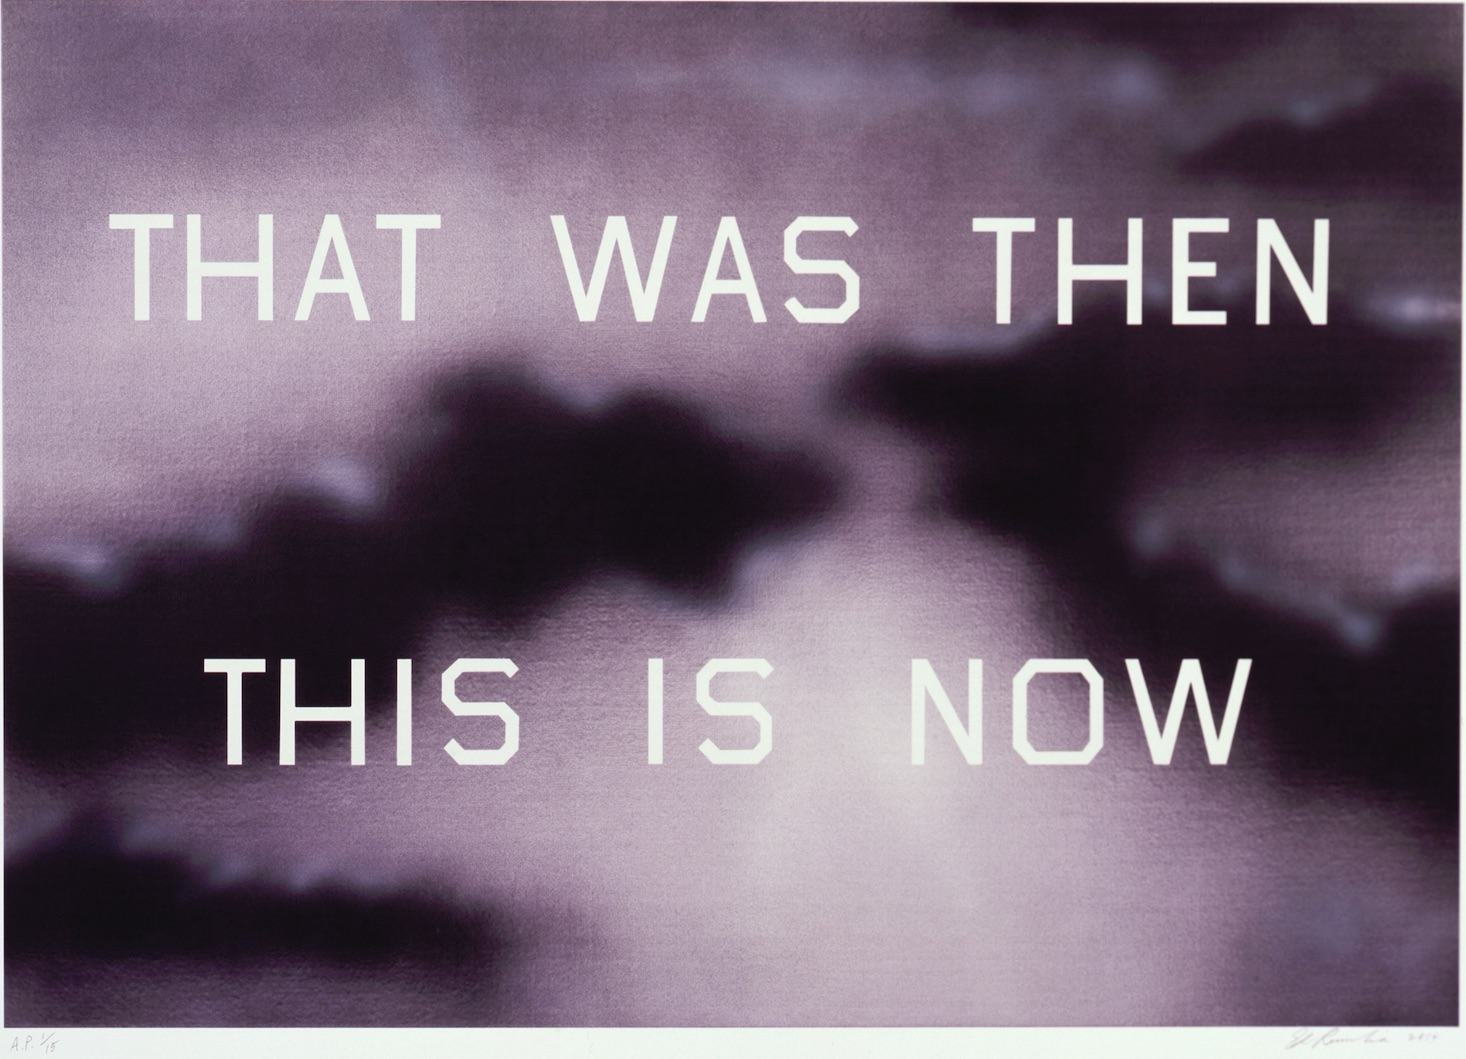 ed ruscha presents christmas gift to the nation the economic voice ruscha that was then this is now